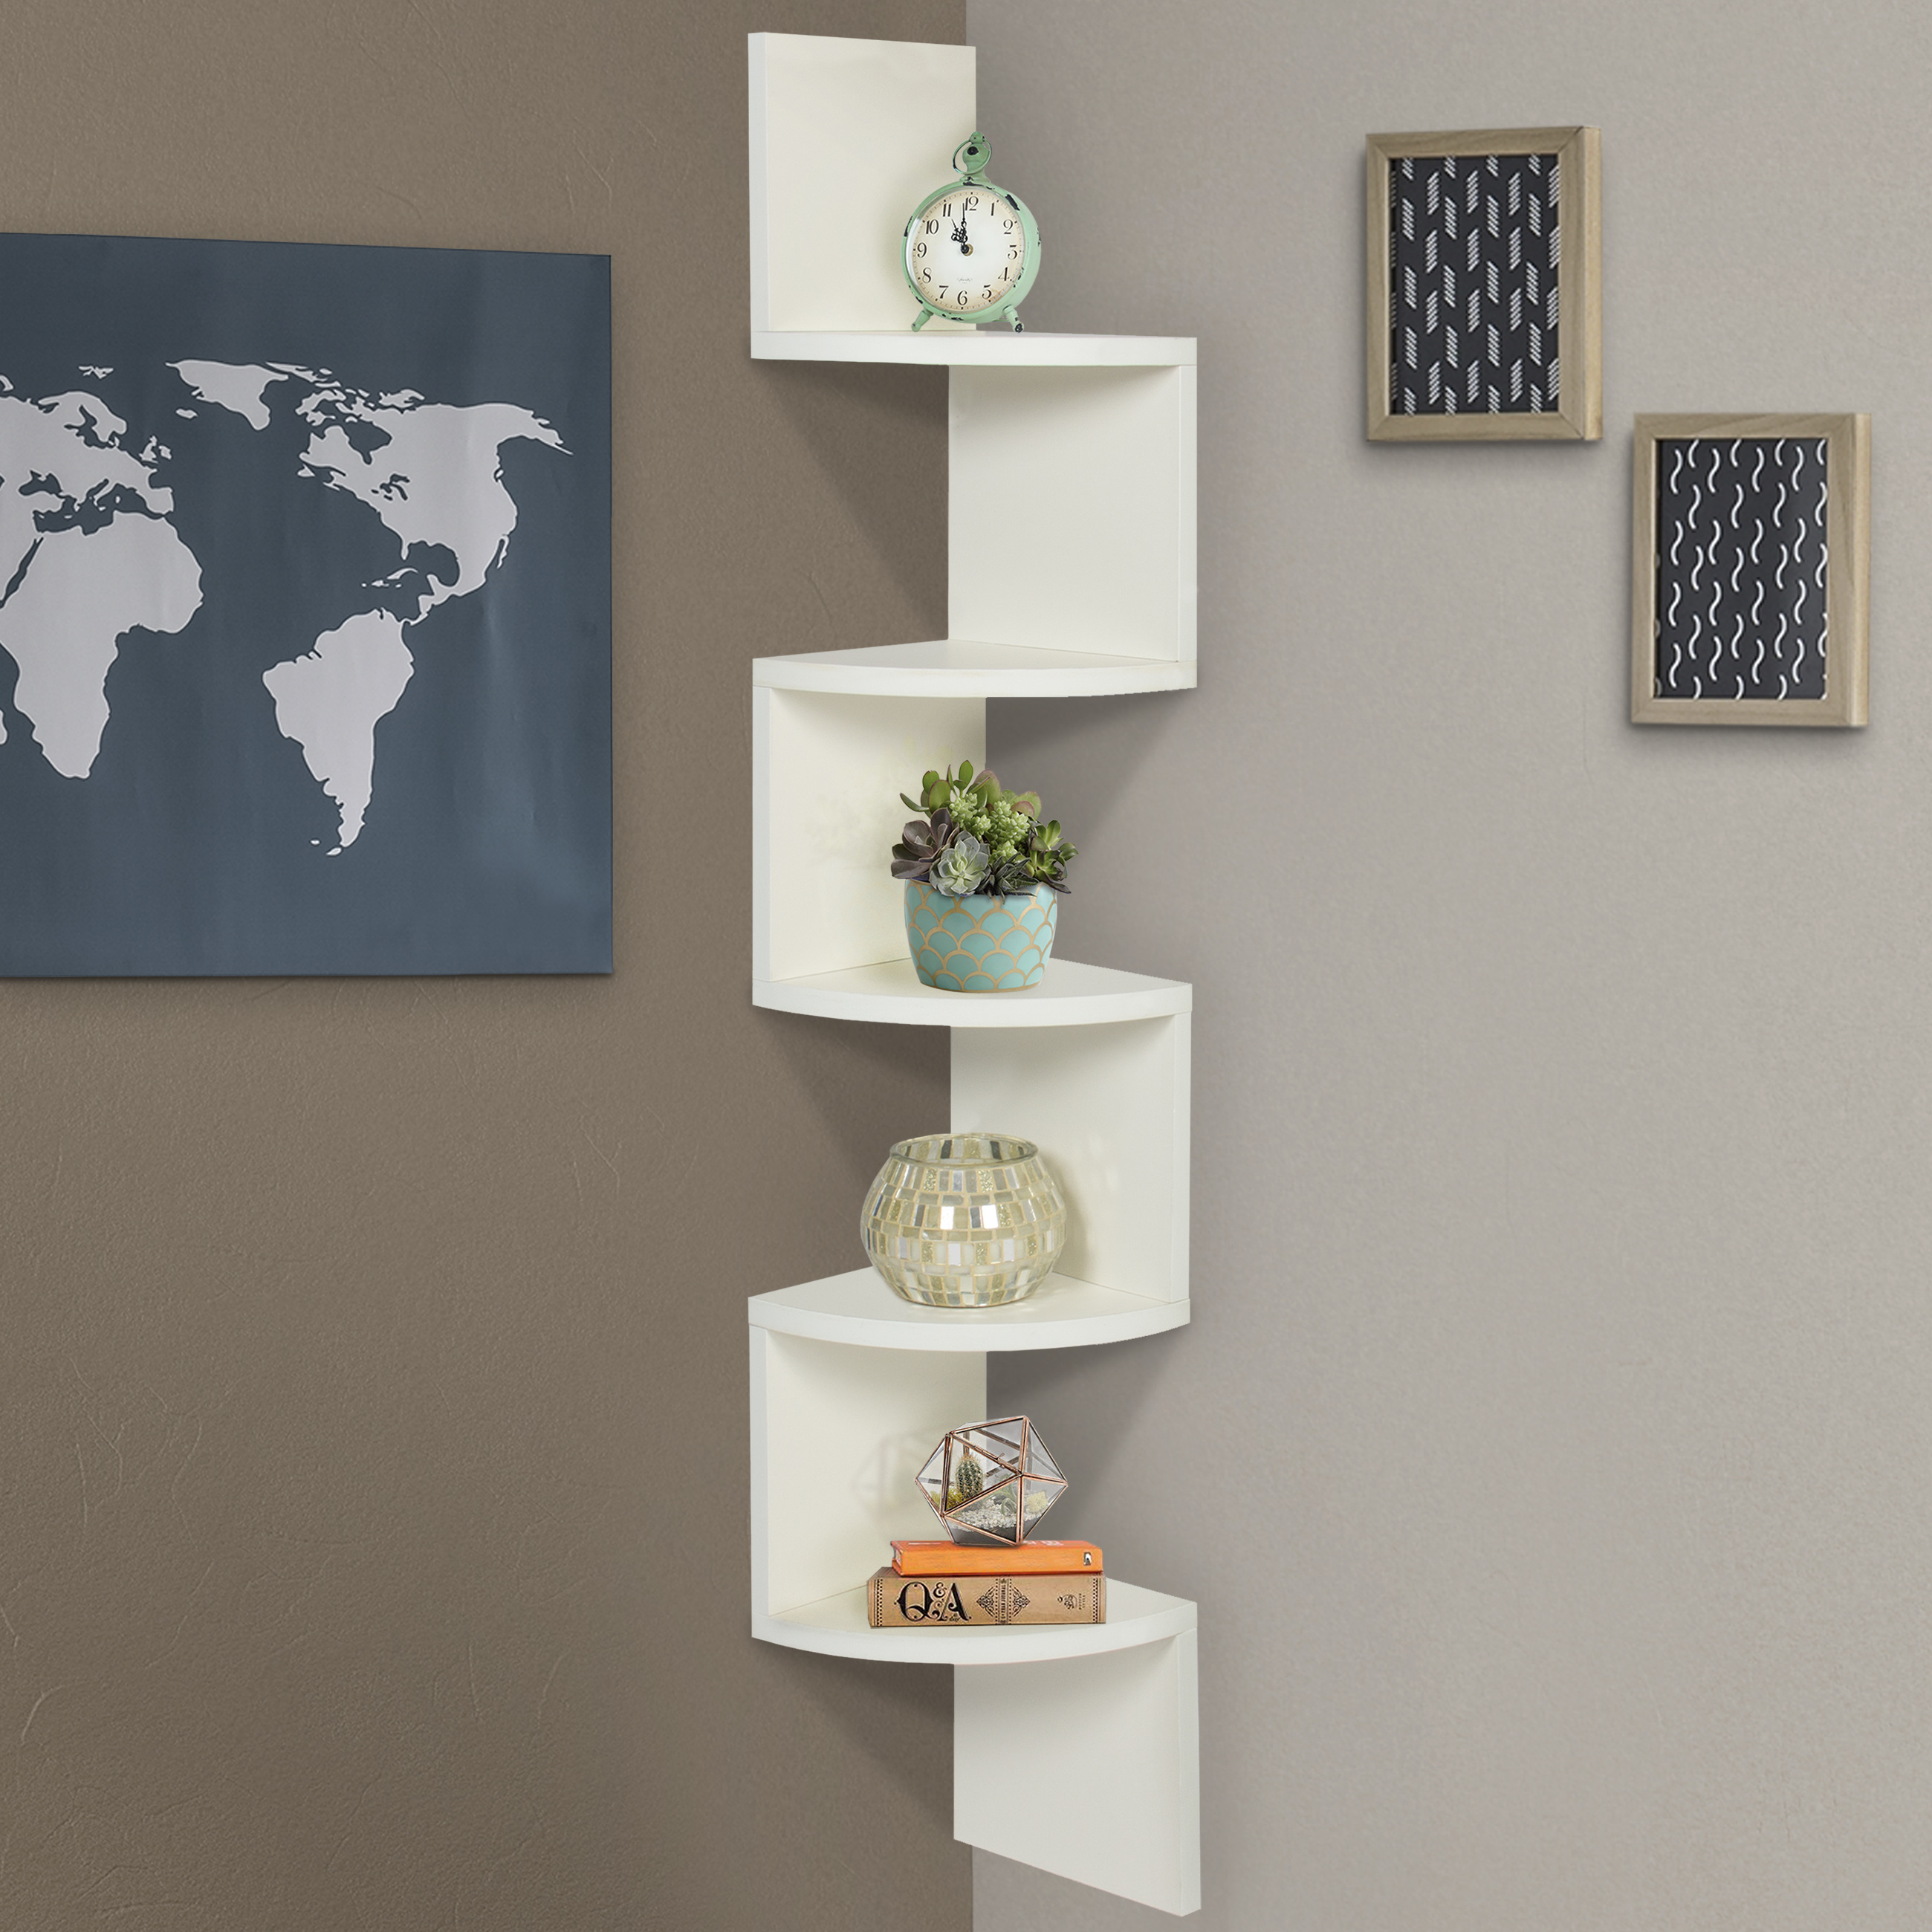 Best Choice Products Large Corner Wood Zig Zag Wall Shelf White Finish Home Decor Furniture